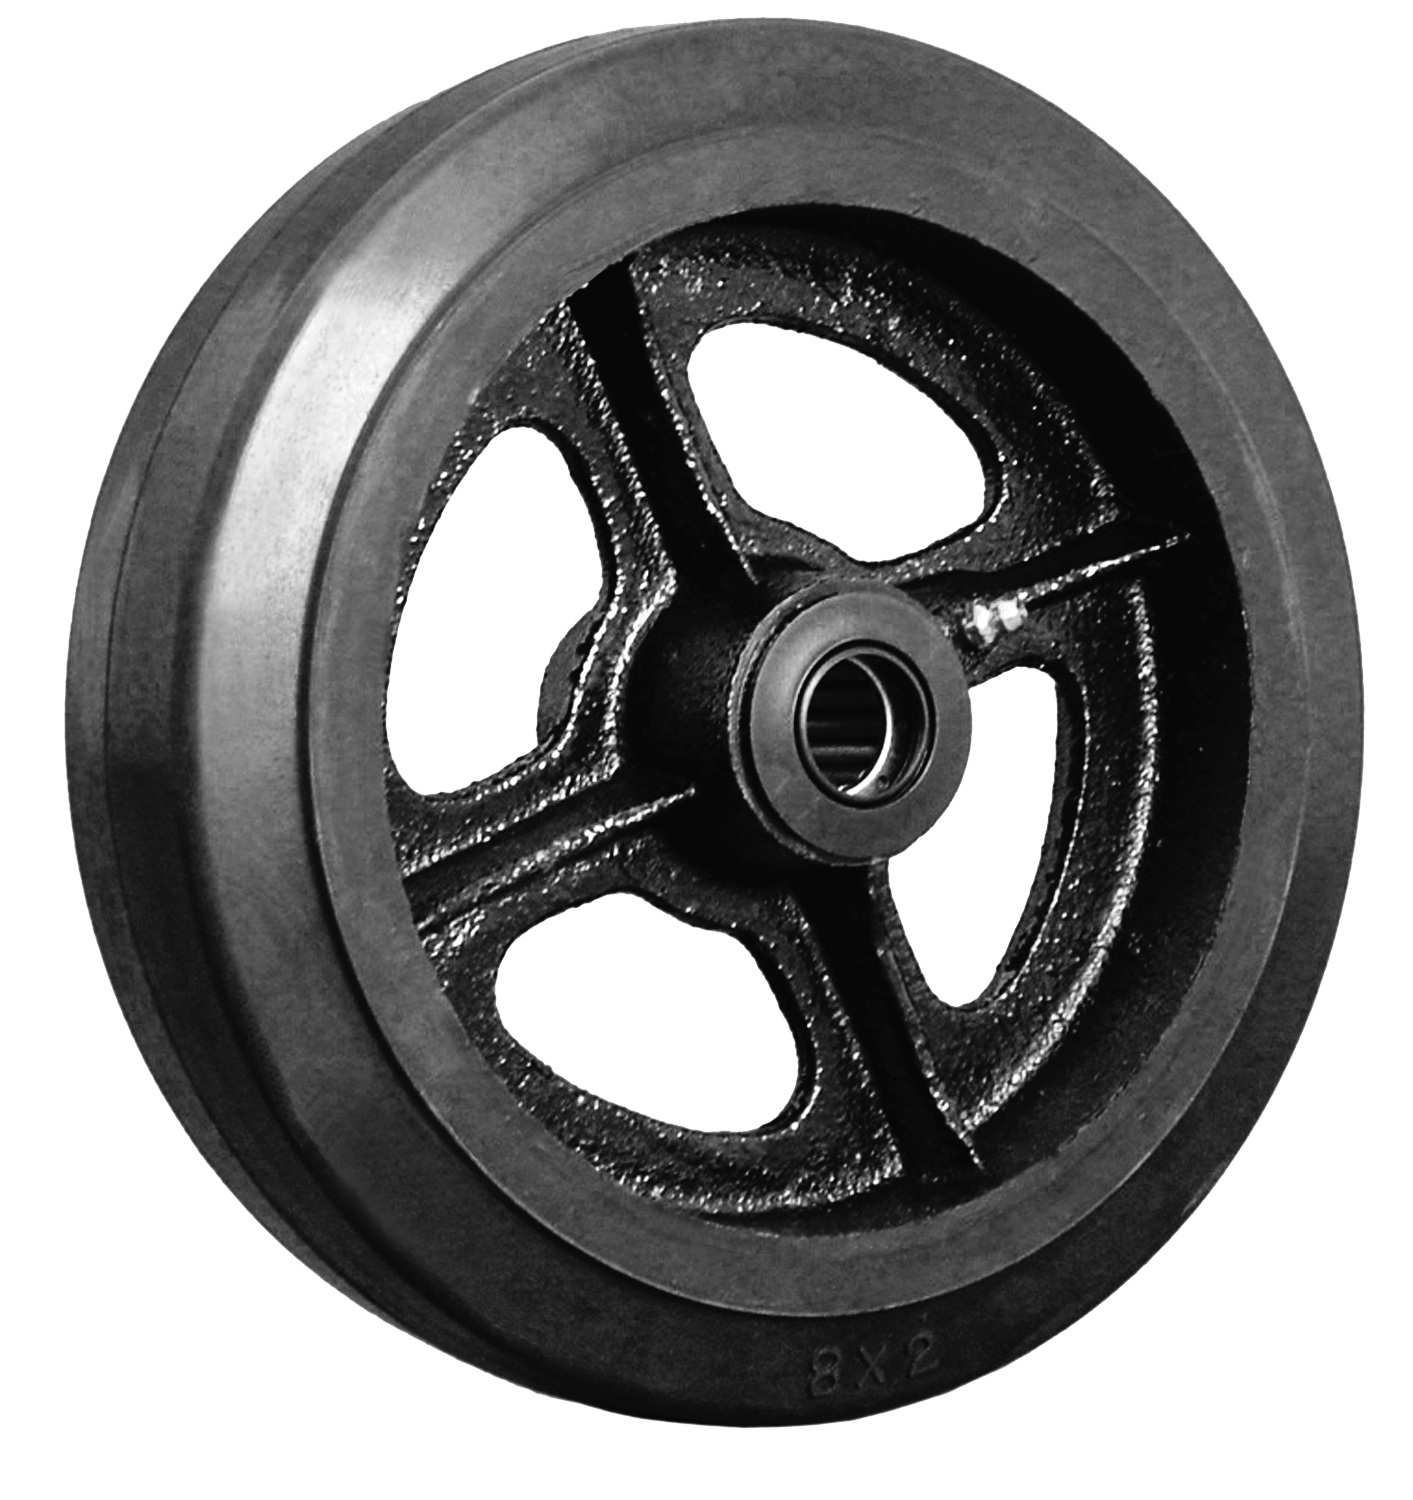 All Products albion Casters